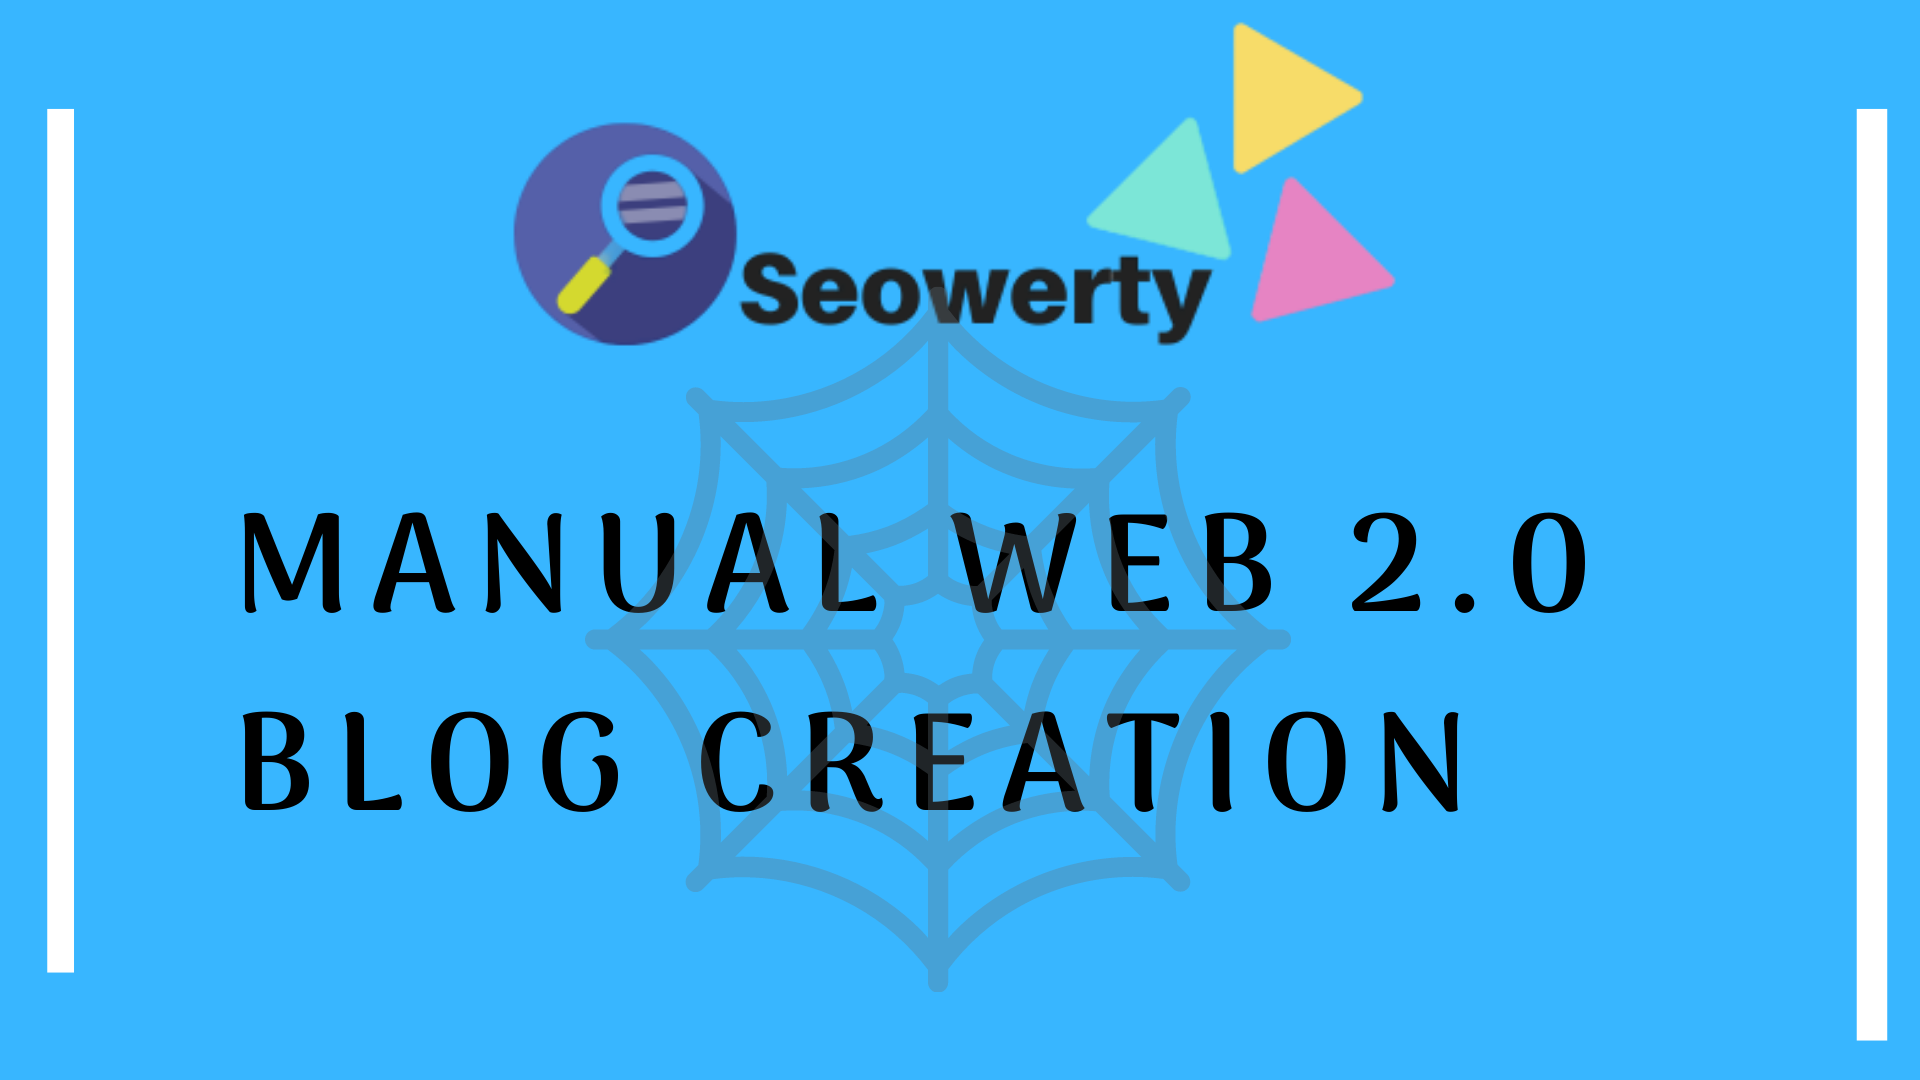 Manually Created 50 Super web 2.0 Blogs with pass